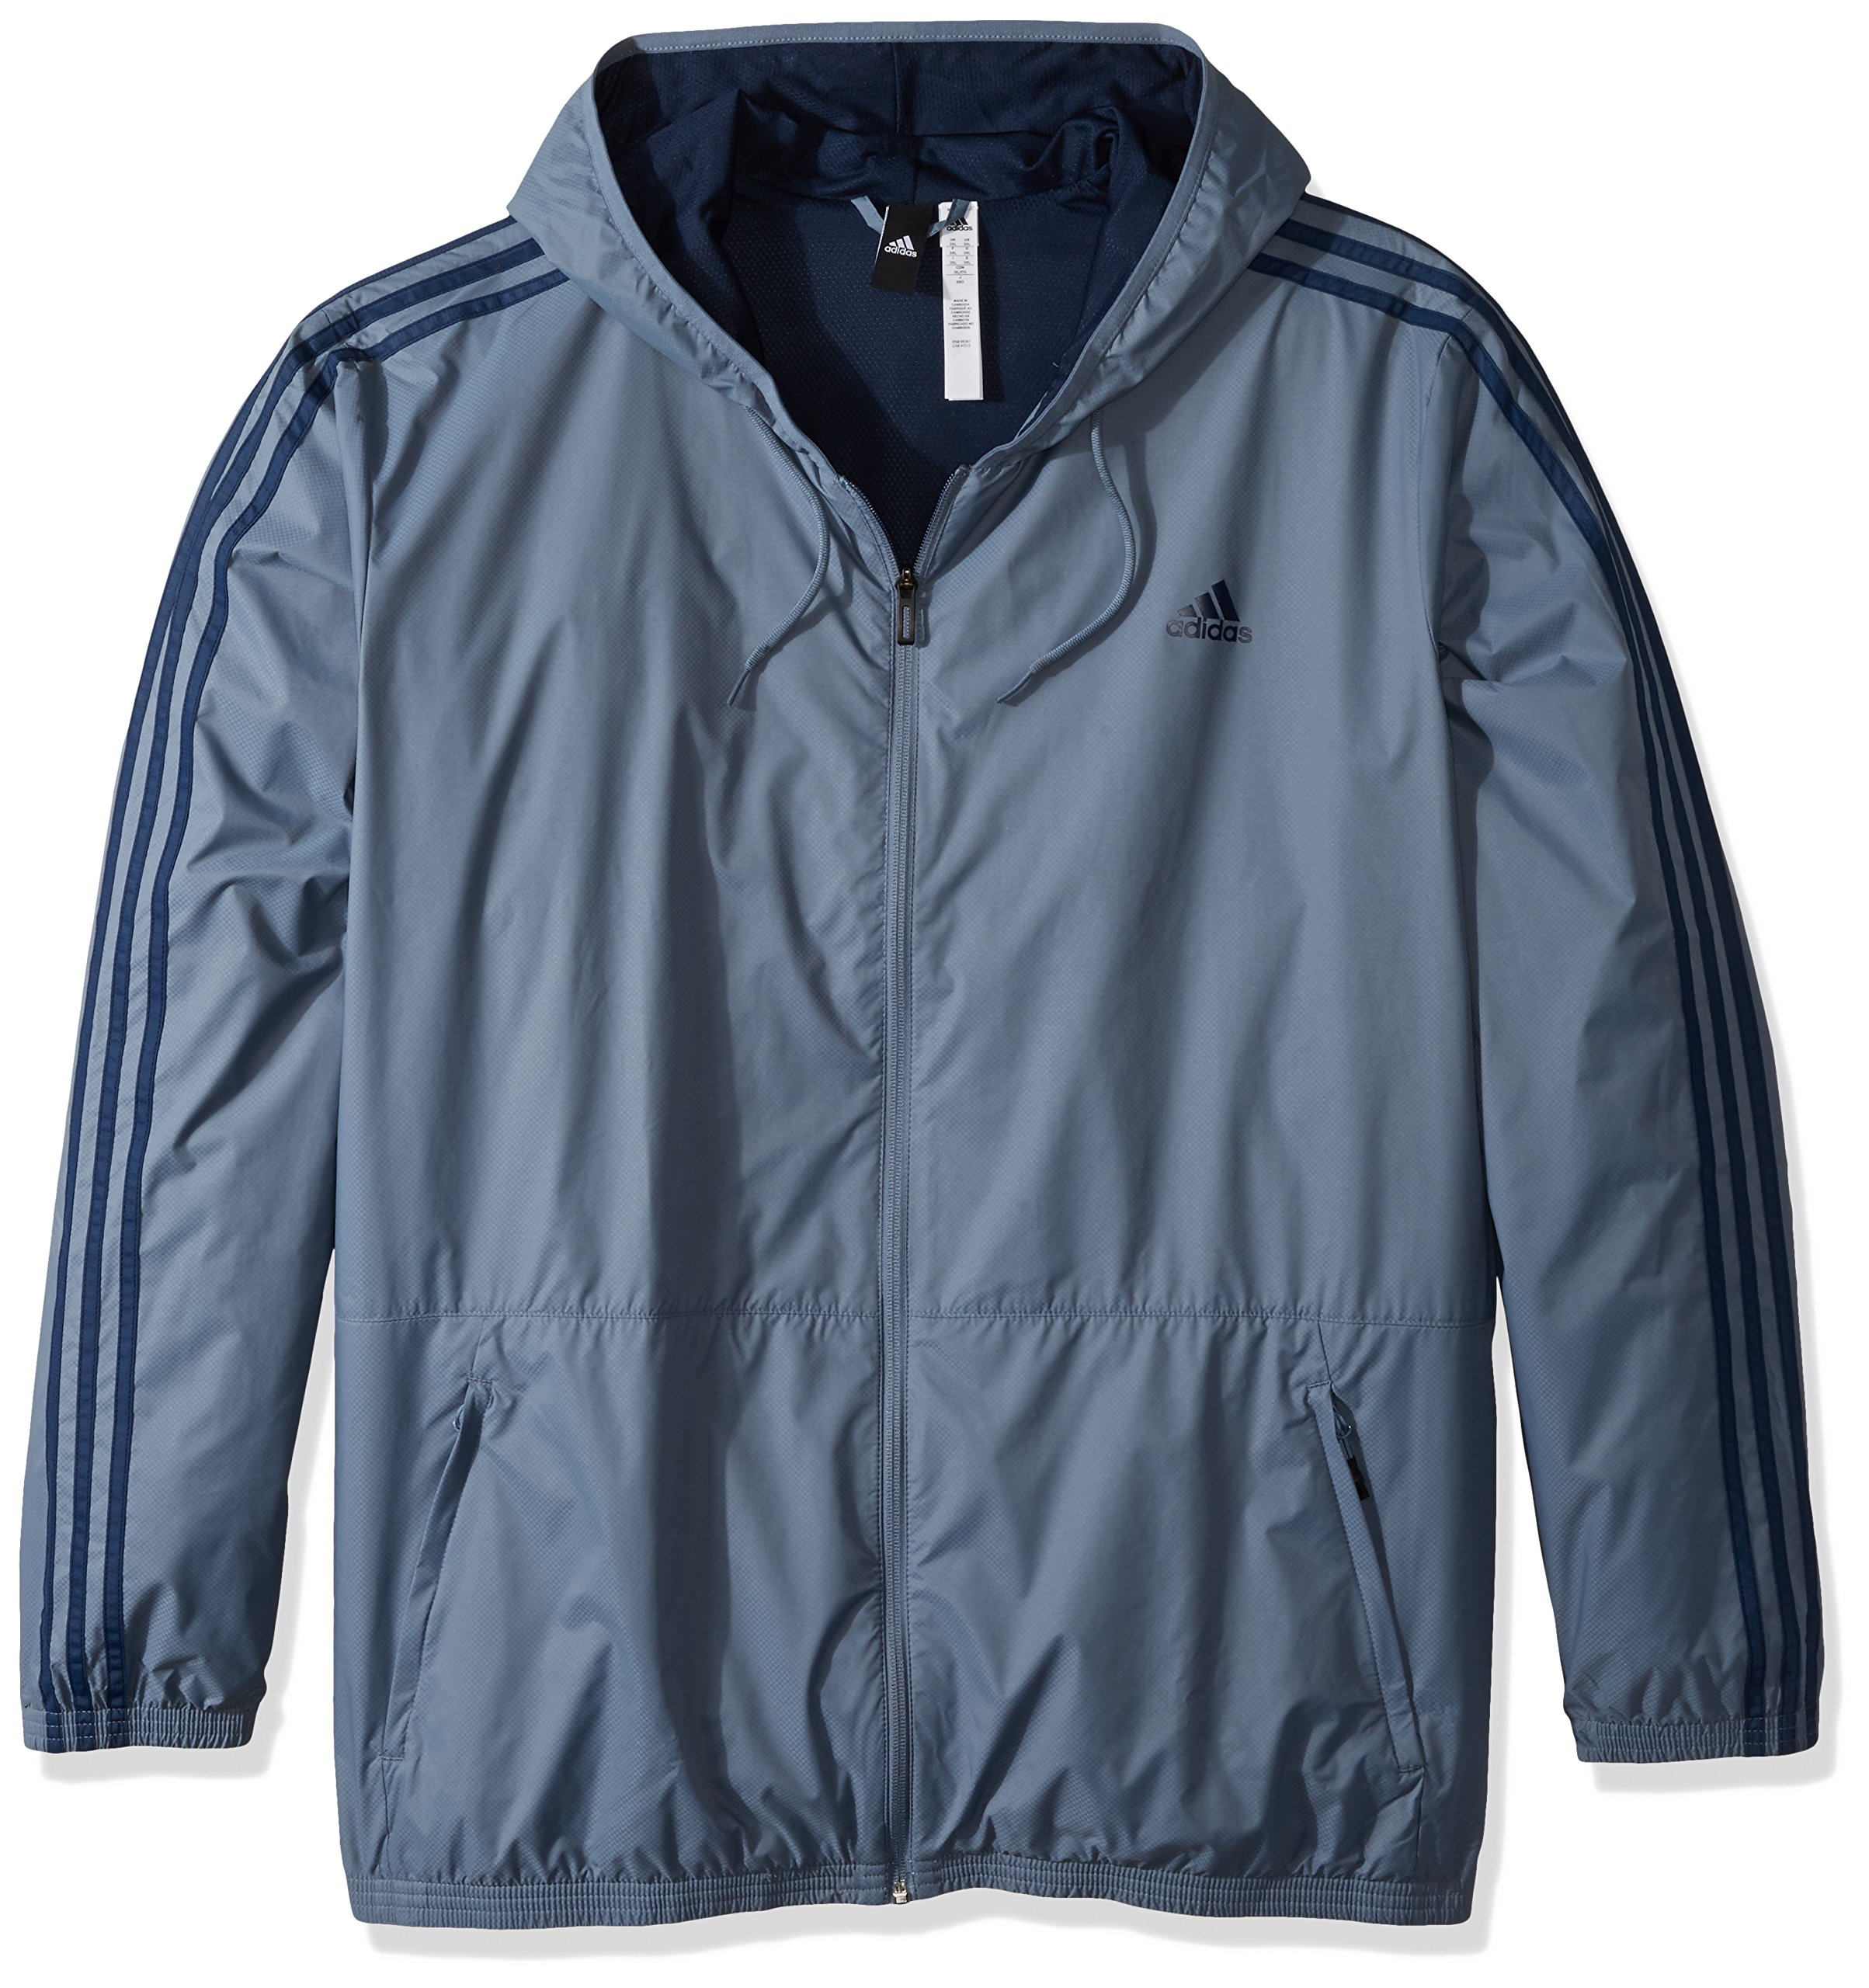 adidas Men's Essentials Wind Jacket, Raw Steel/Collegiate Navy, Small by adidas (Image #1)